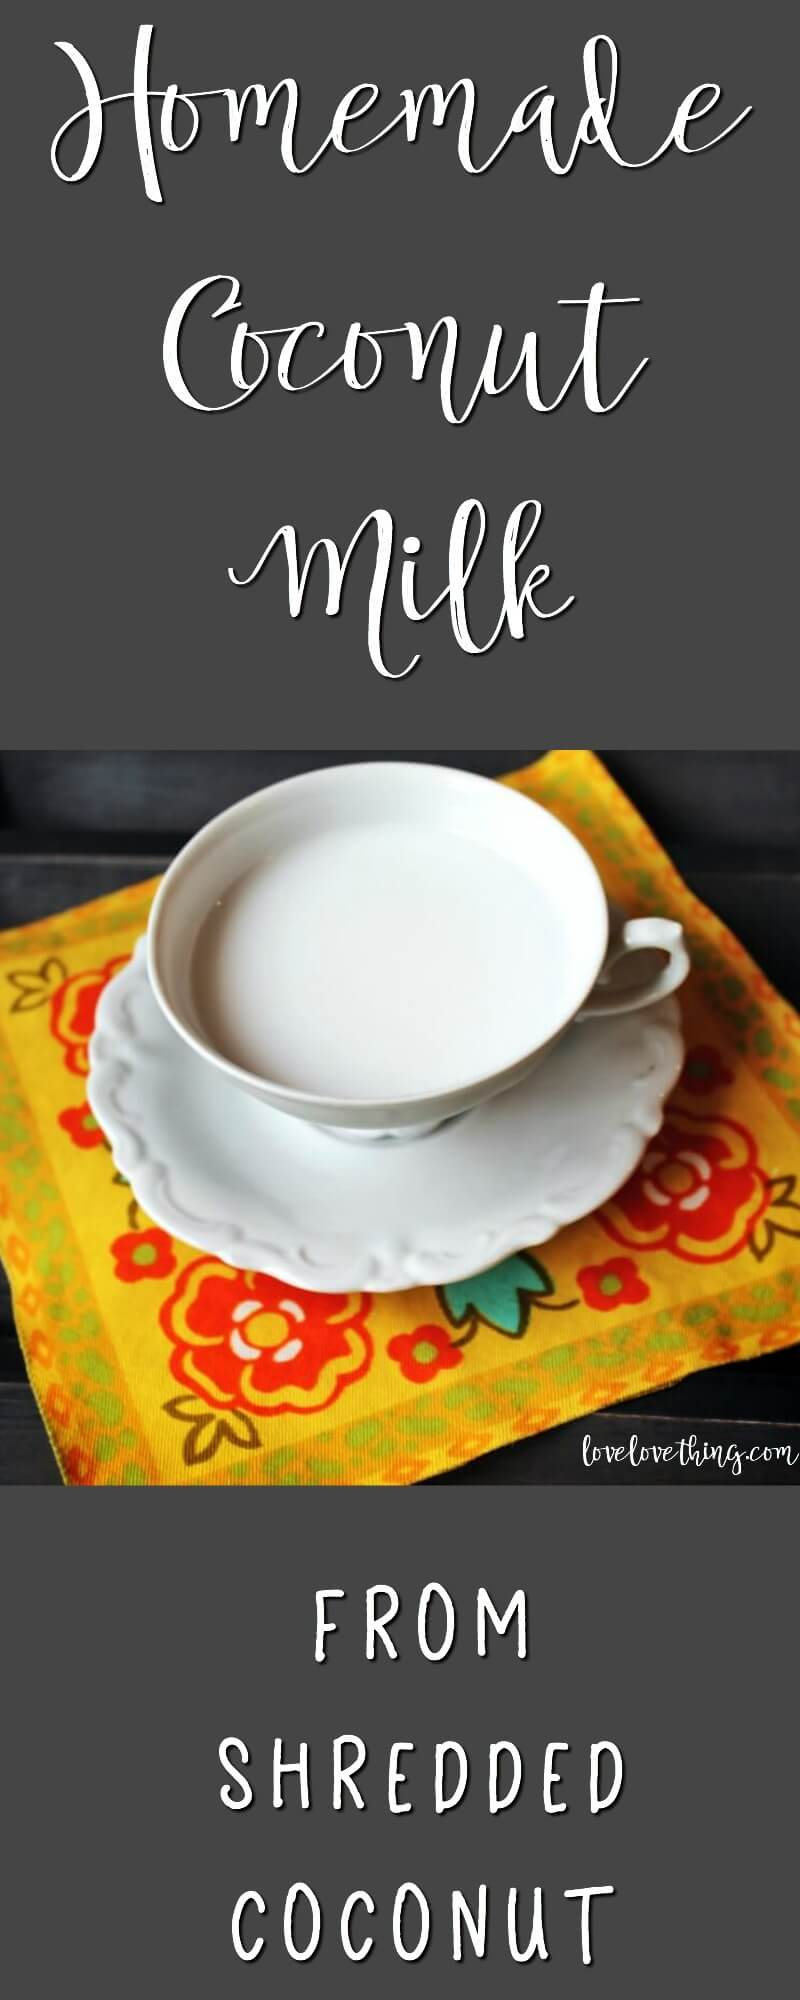 How to make your own homemade coconut milk from shredded coconut!